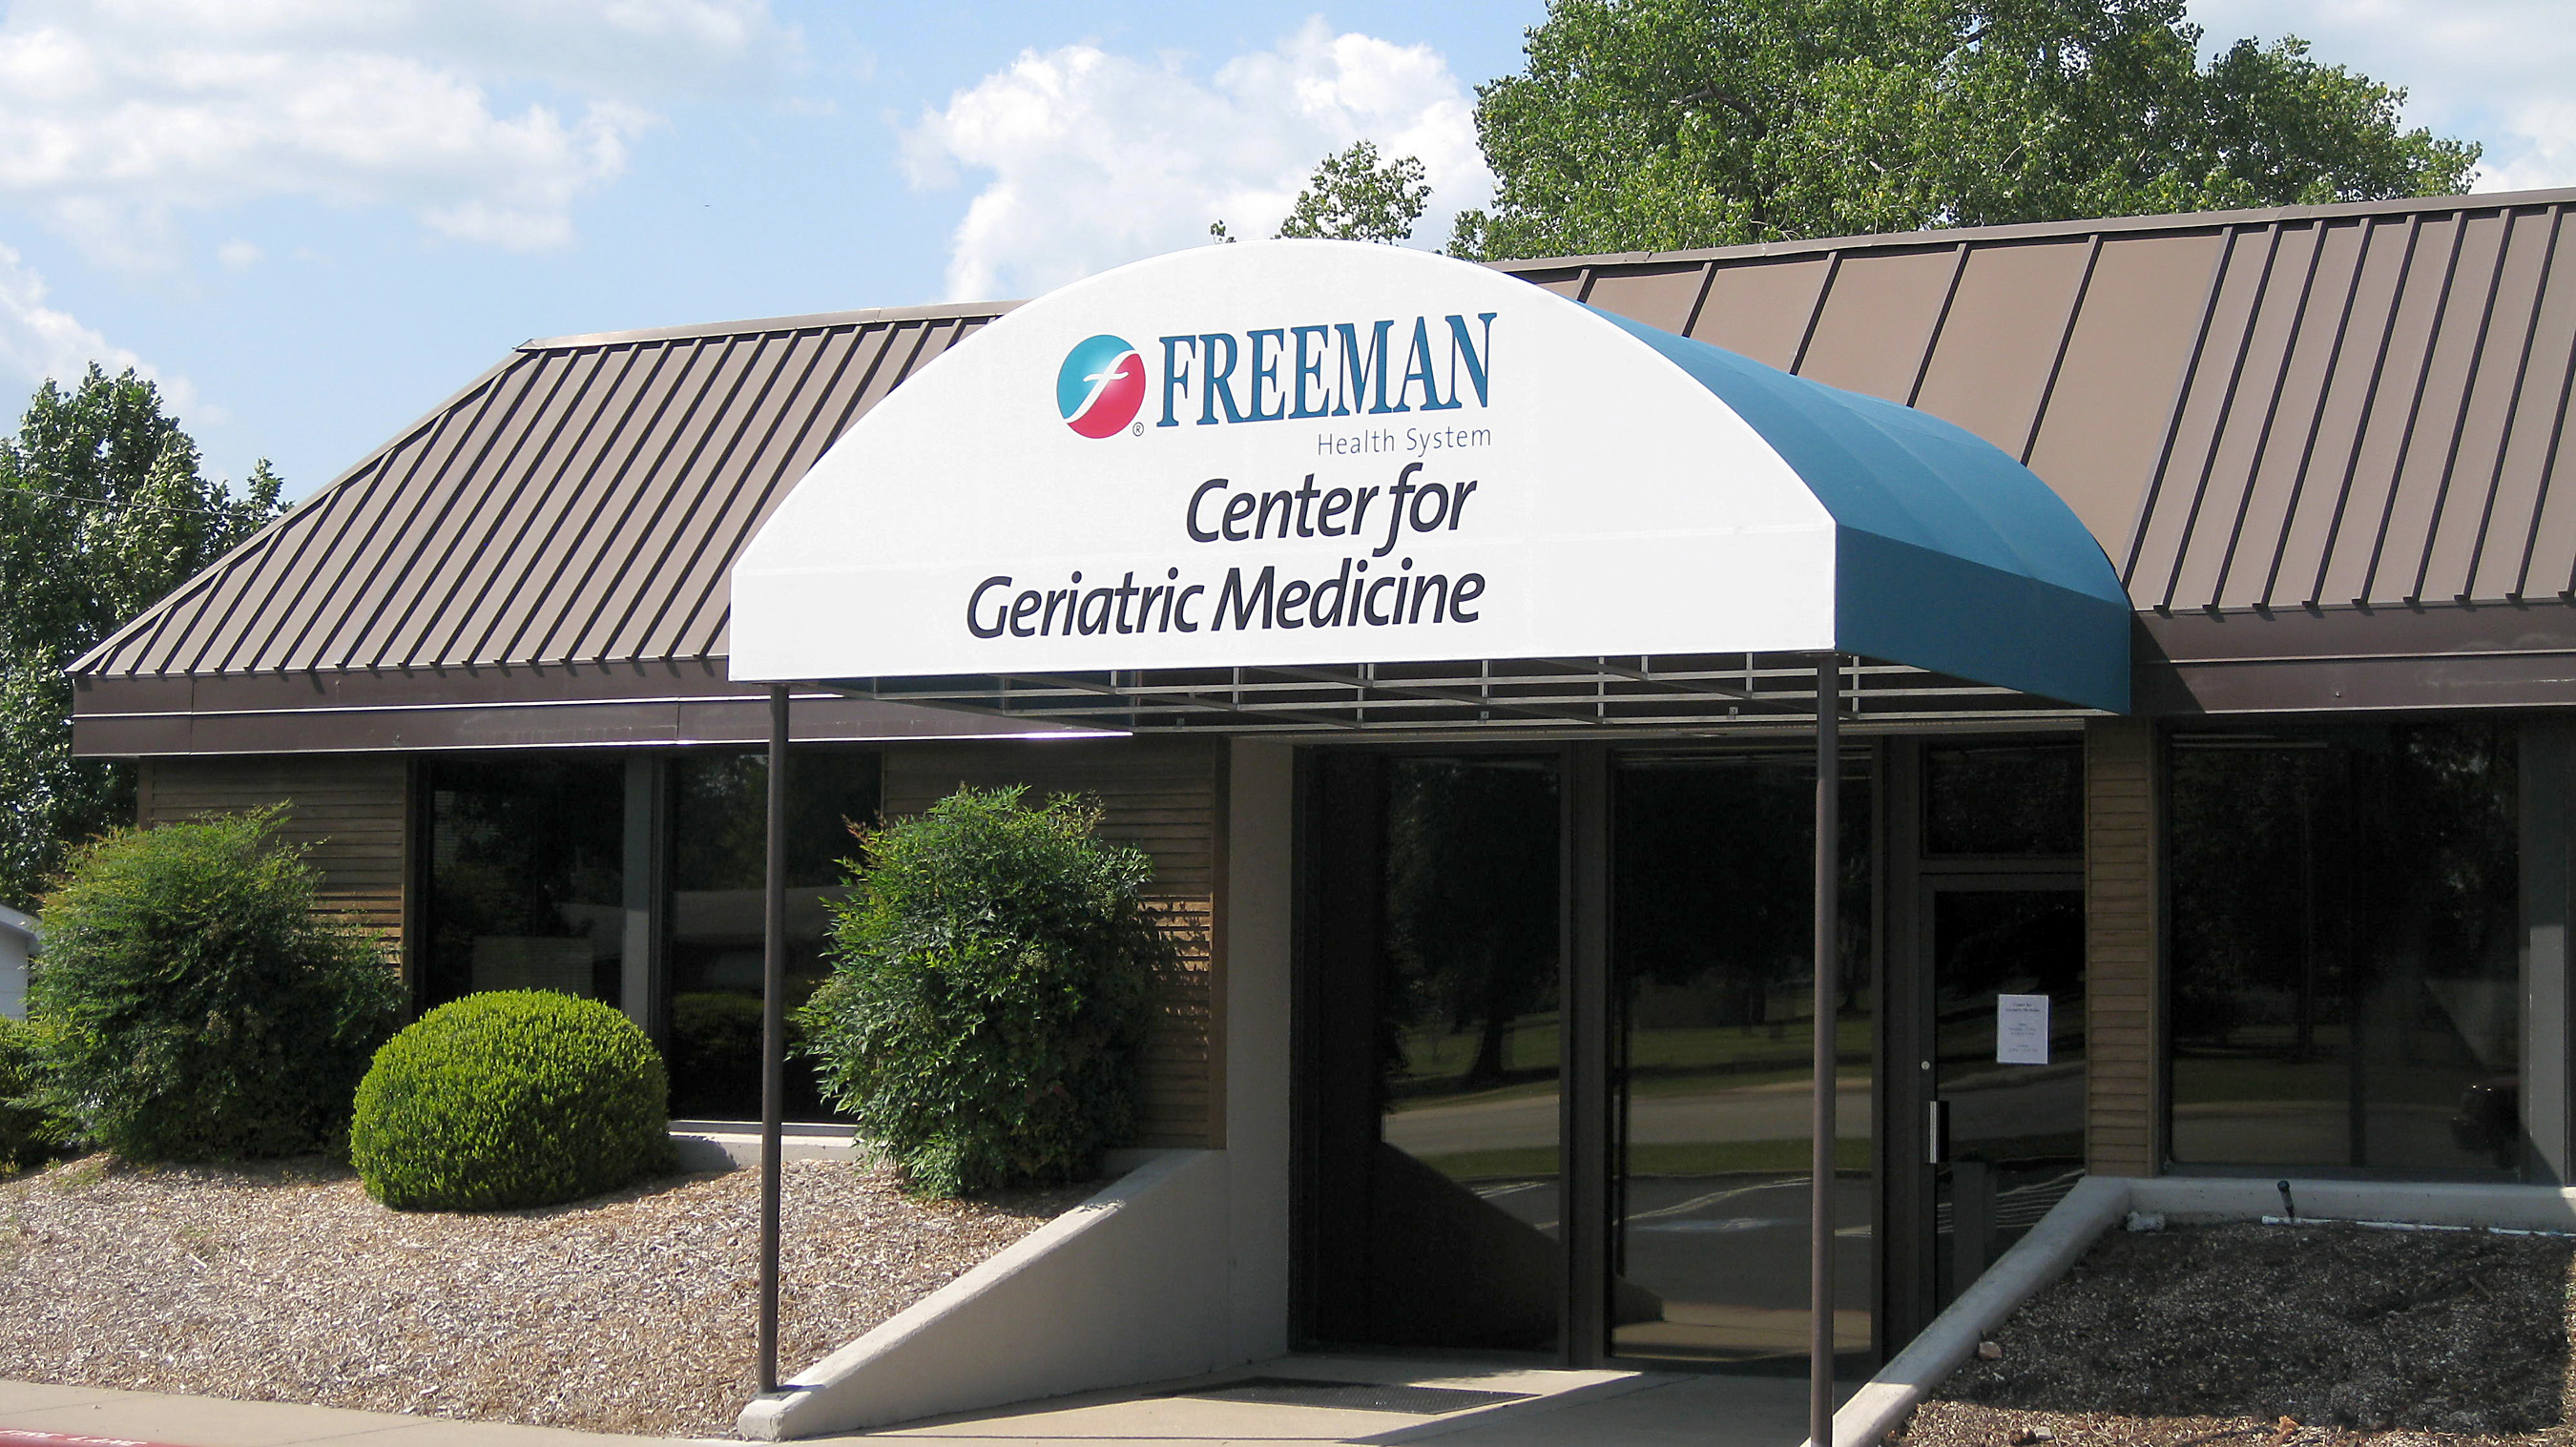 Freeman Center for Geriatric Medicine